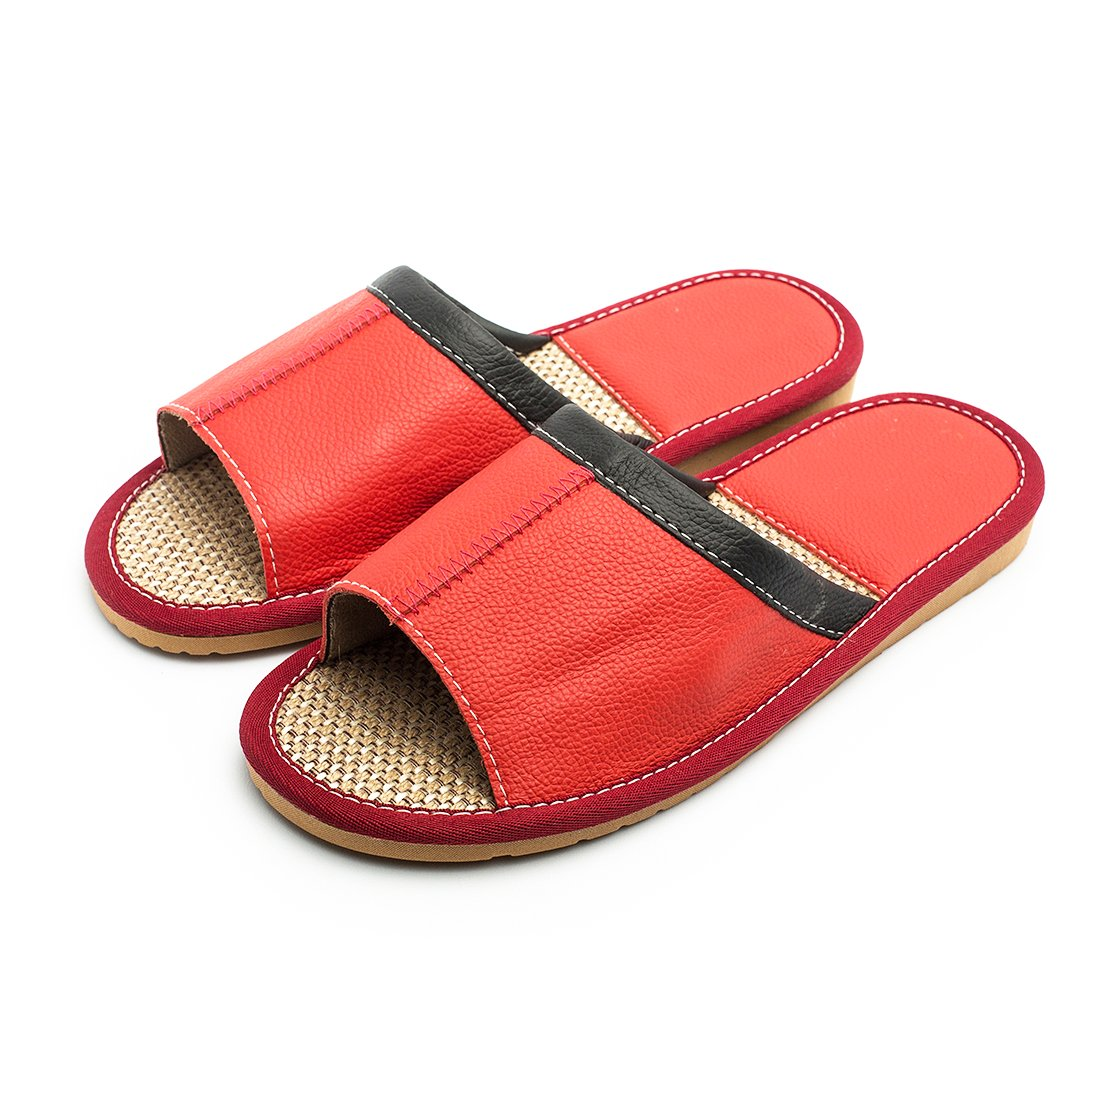 Maylian Summer Flat Slippers For Women Indoor Home Leather Slide Sandal(Red,Size 9)